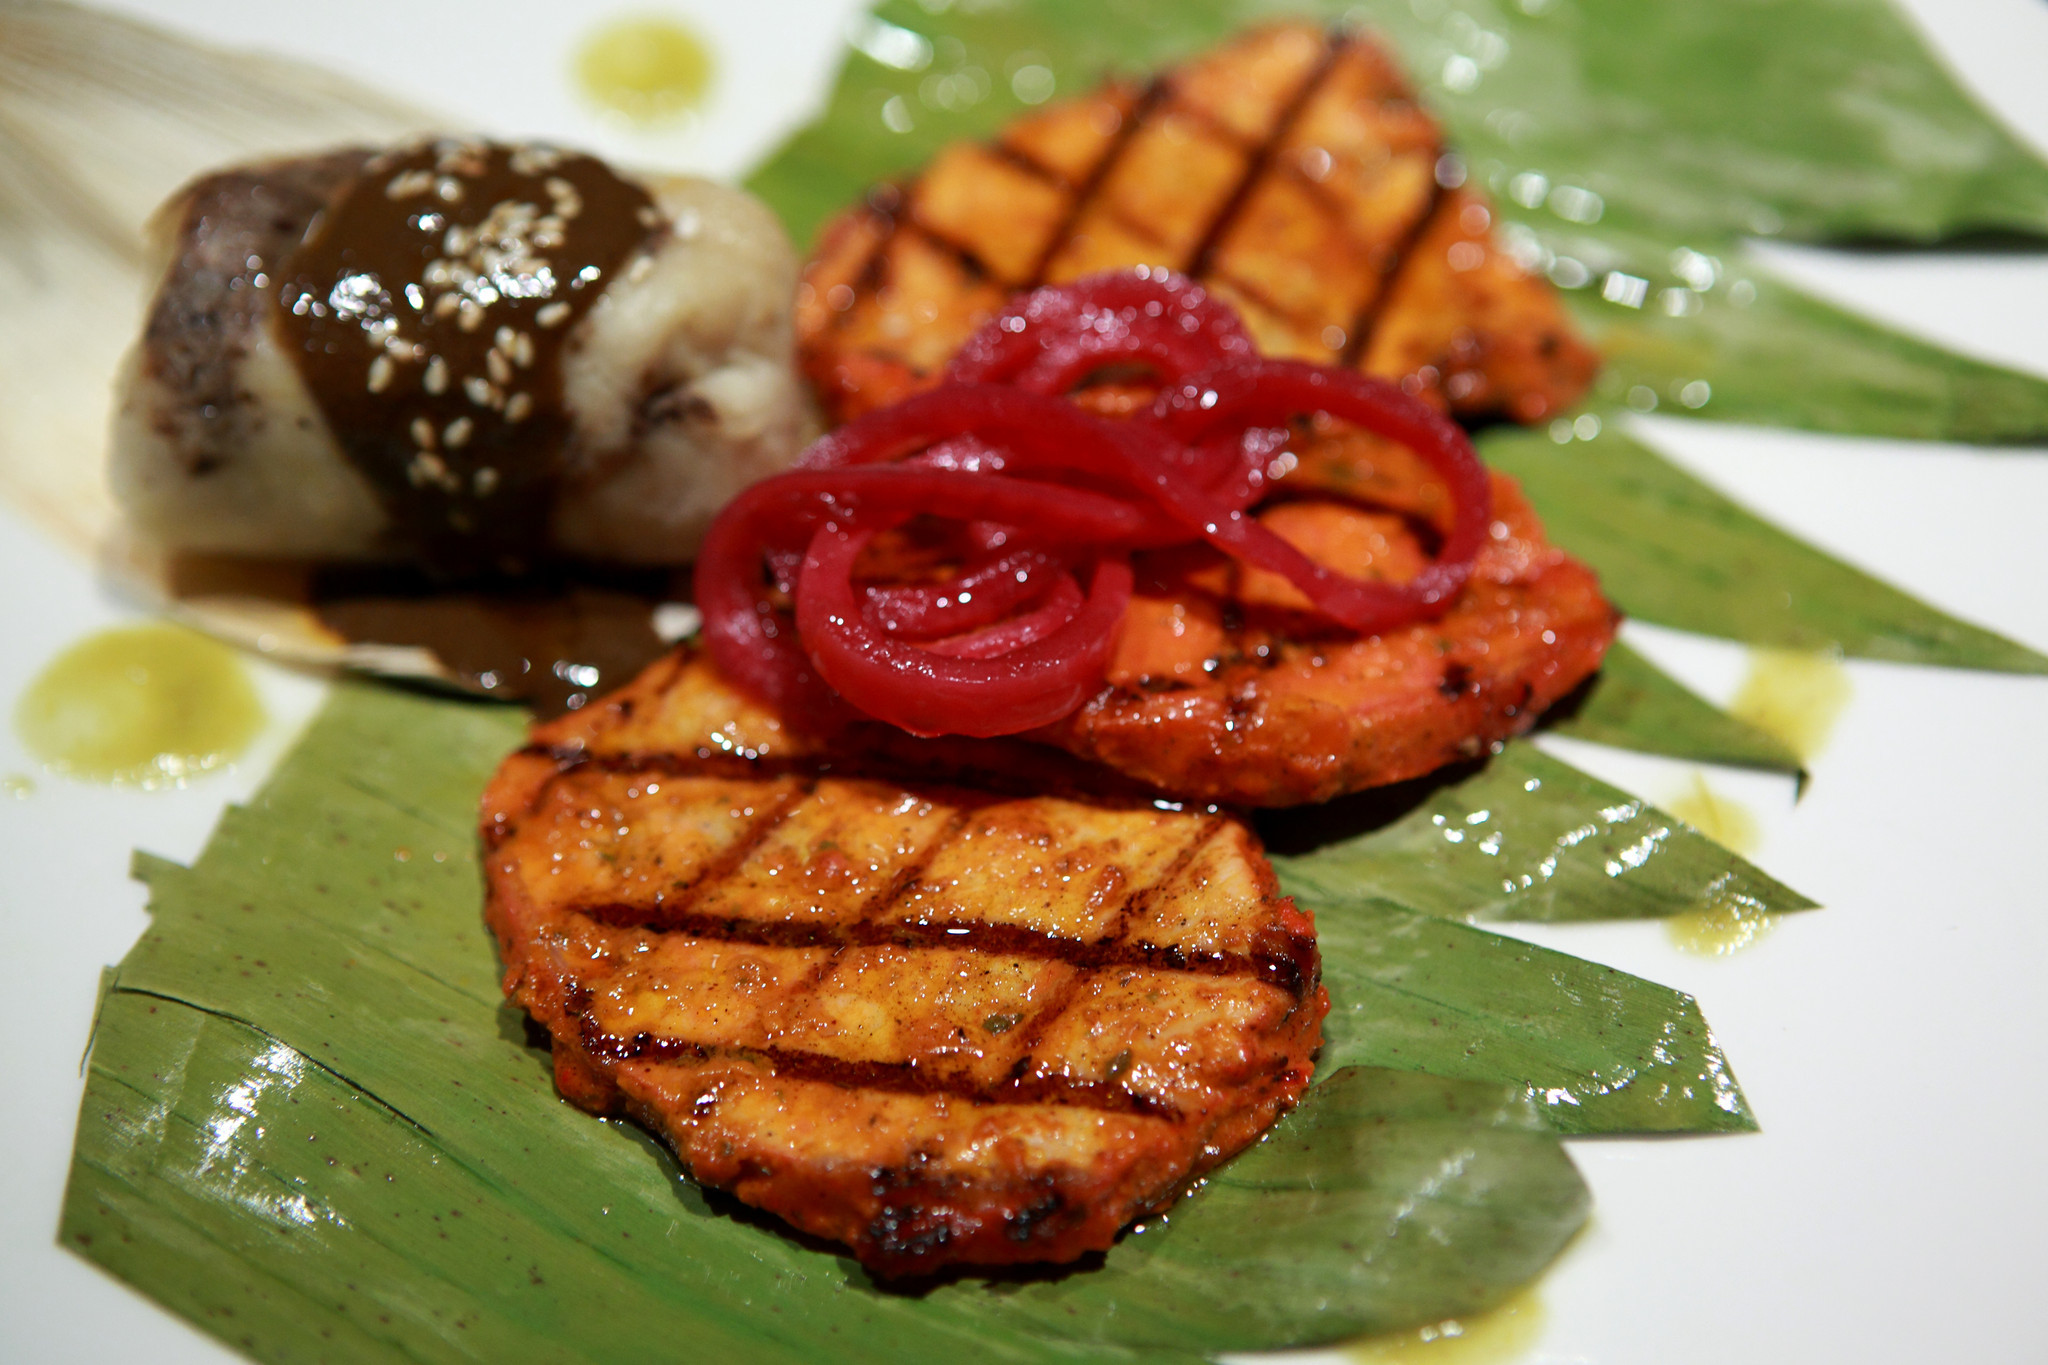 An Achiote Marinated Grilled Pork dish is shown at the restaurant Eduardo De San Angel, in Fort Lauderdale.